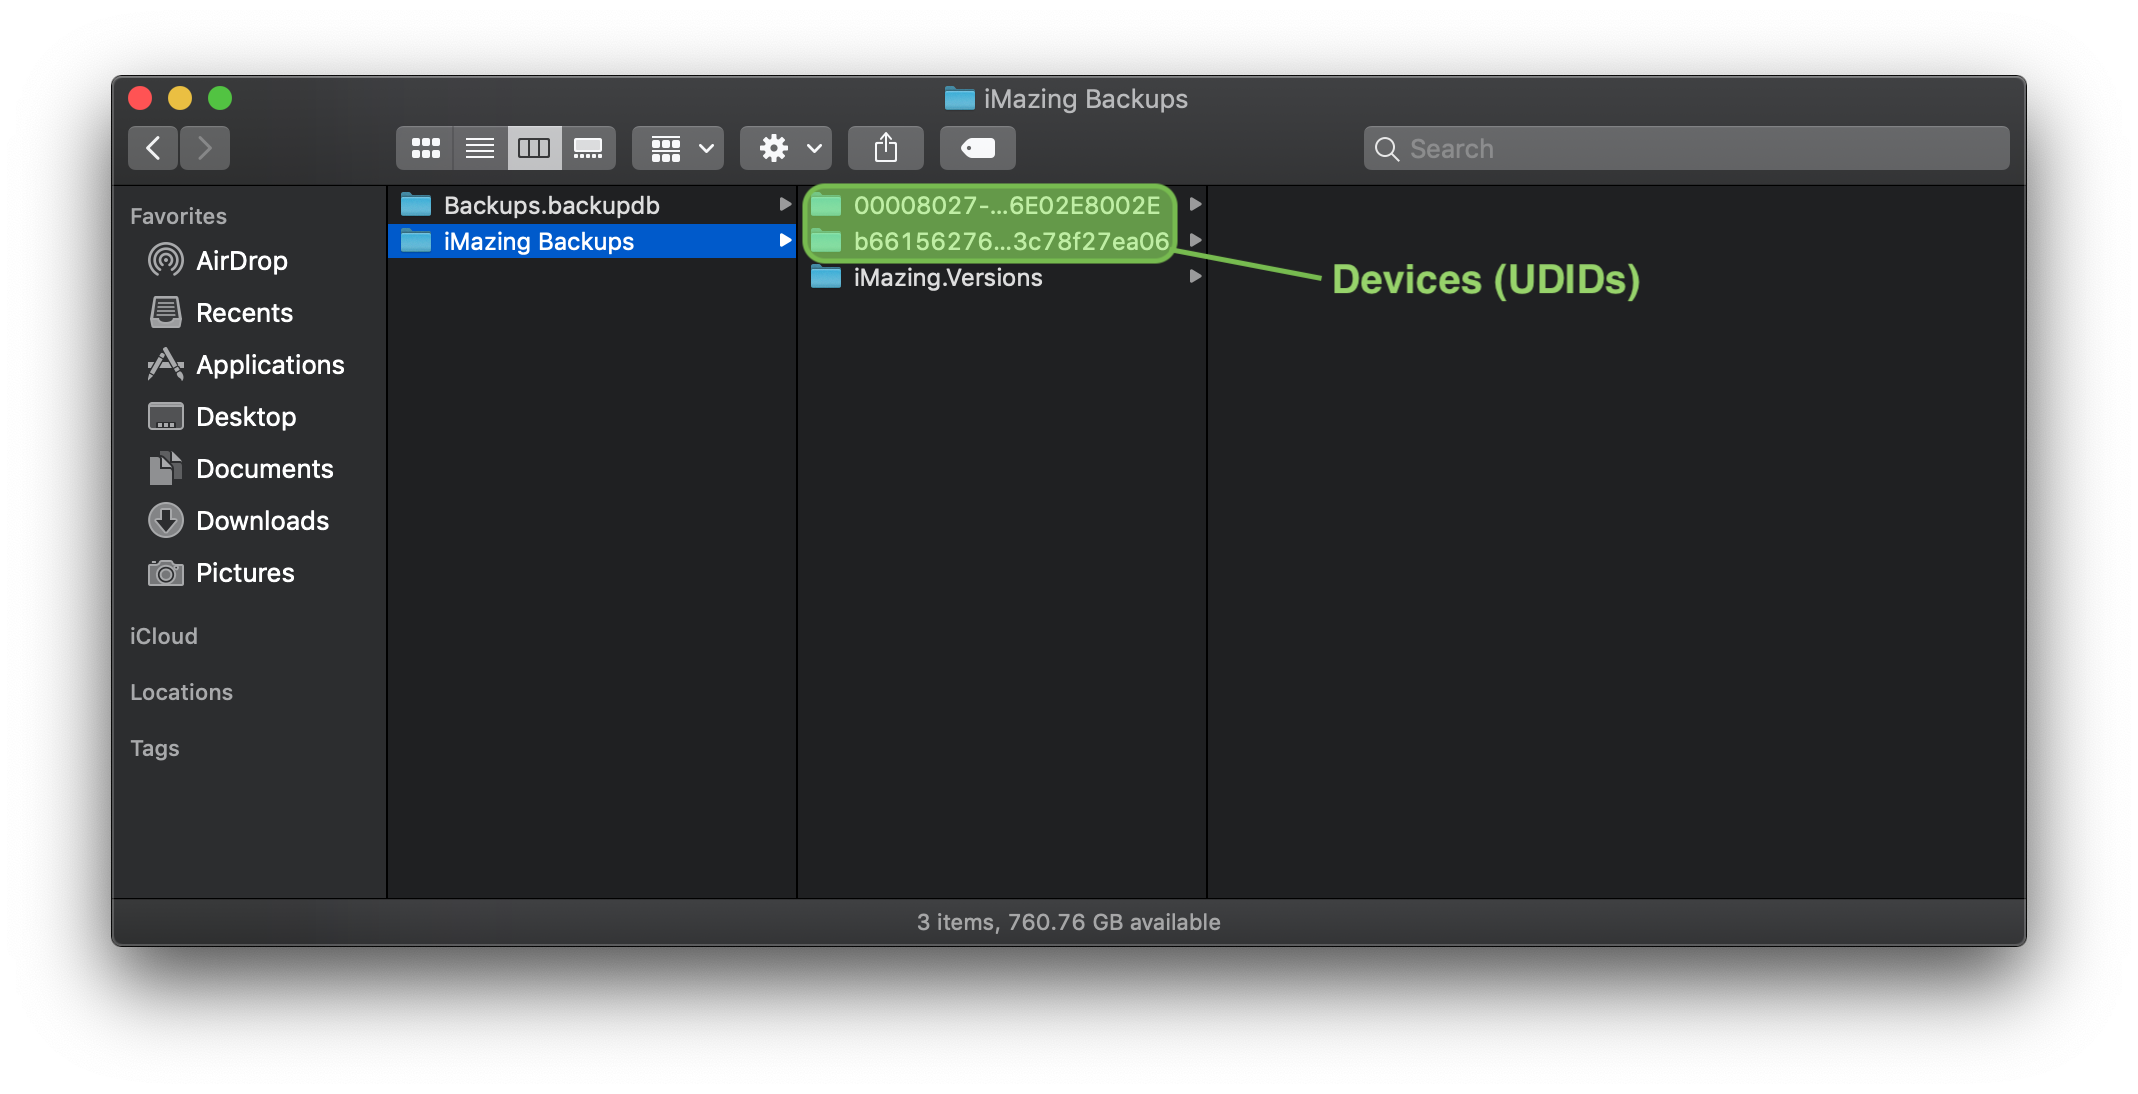 Why do iMazing backups appear to be larger than iTunes